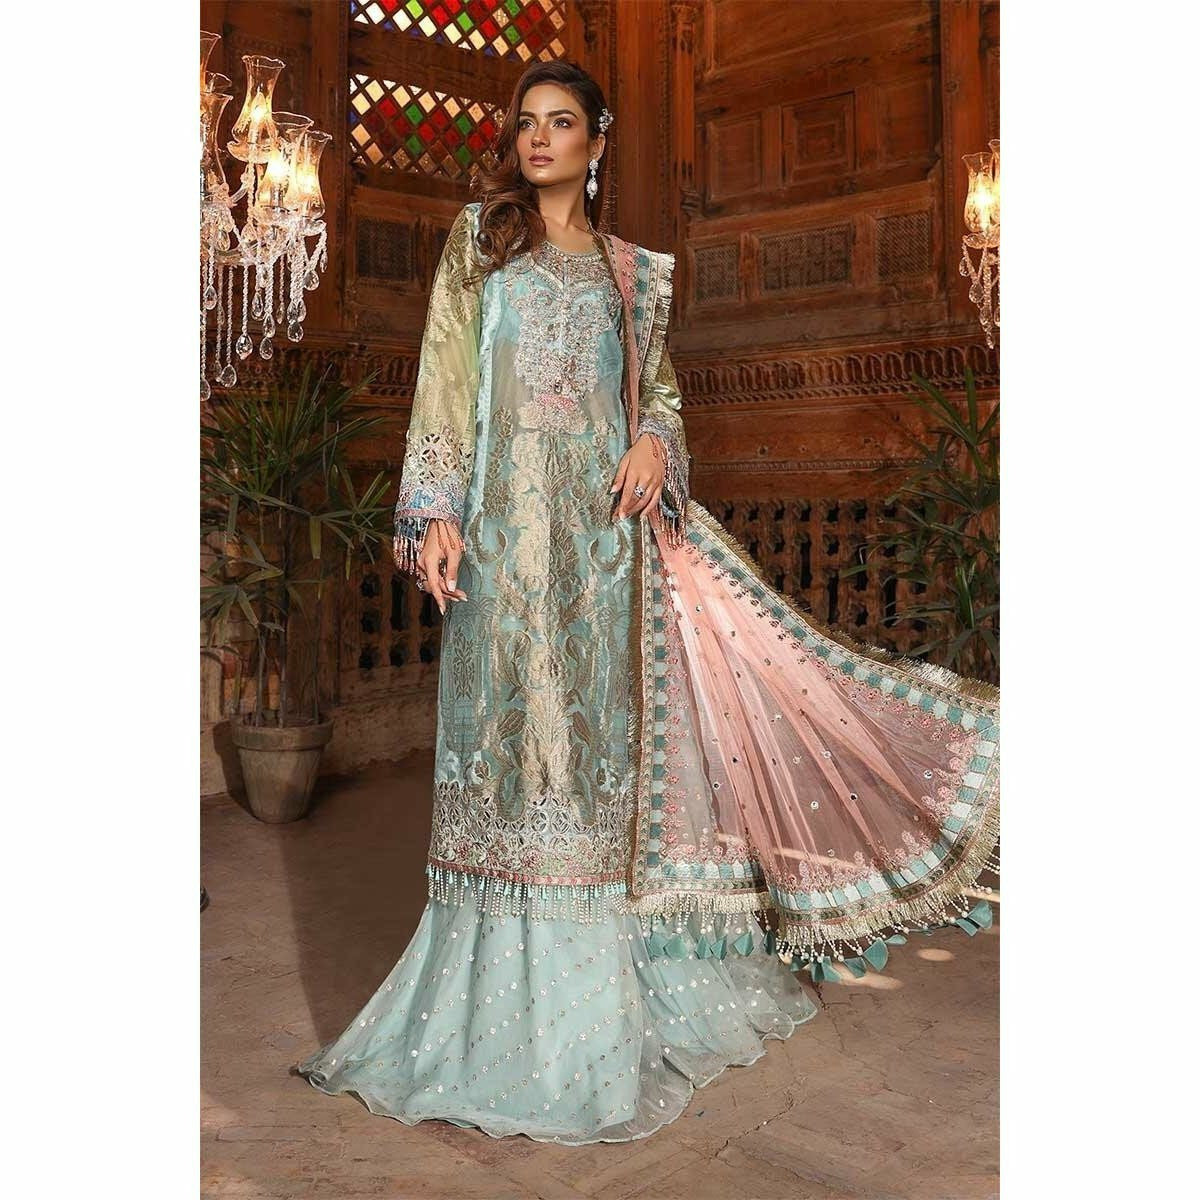 MARIA B MBROIDERED - Powder Blue & Coral (BD-1705) - House of Faiza